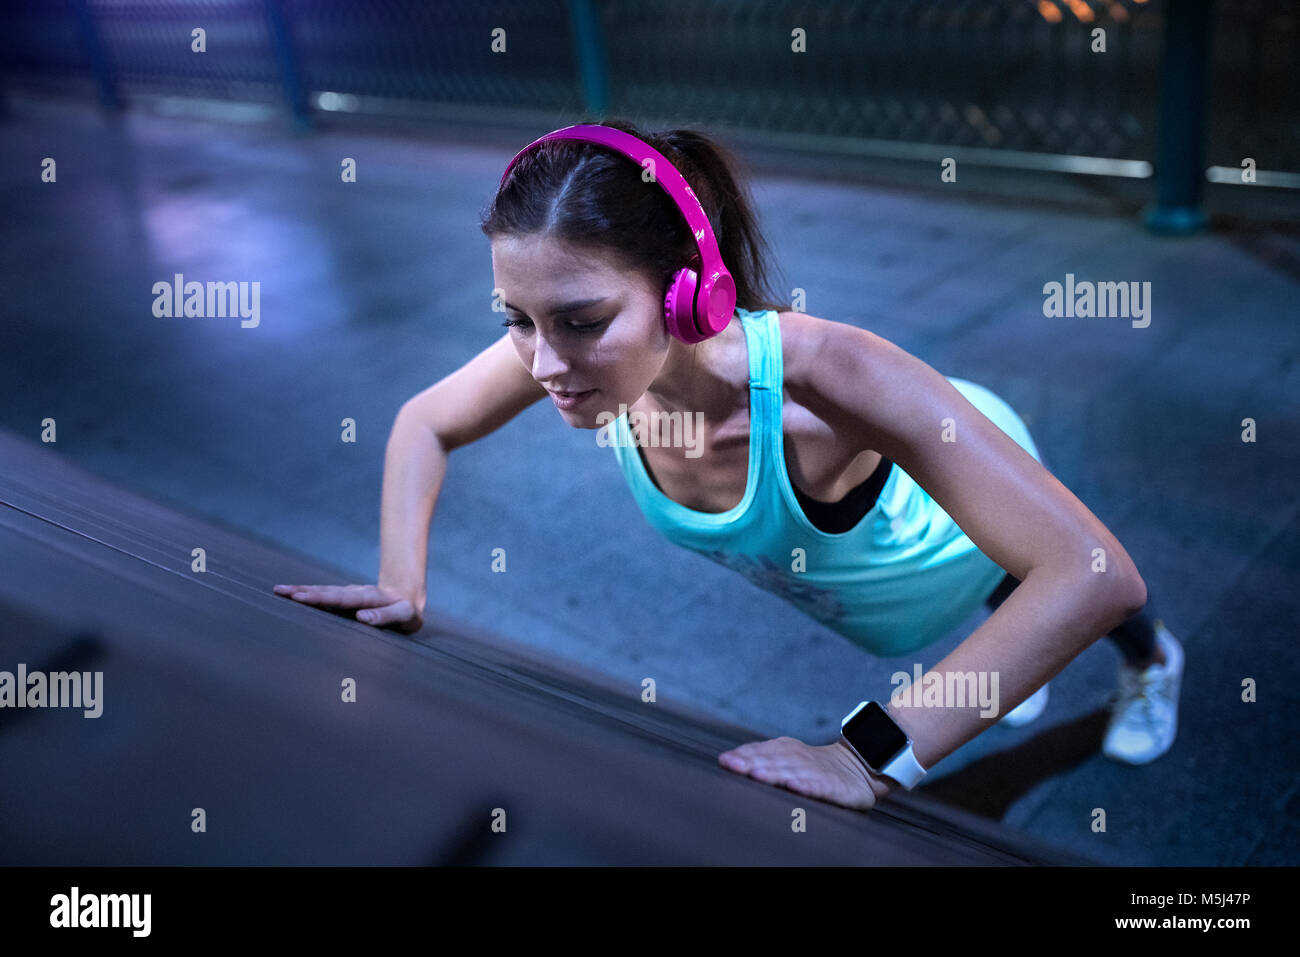 Young woman with pink headphones doing pushups in modern urban setting at night - Stock Image